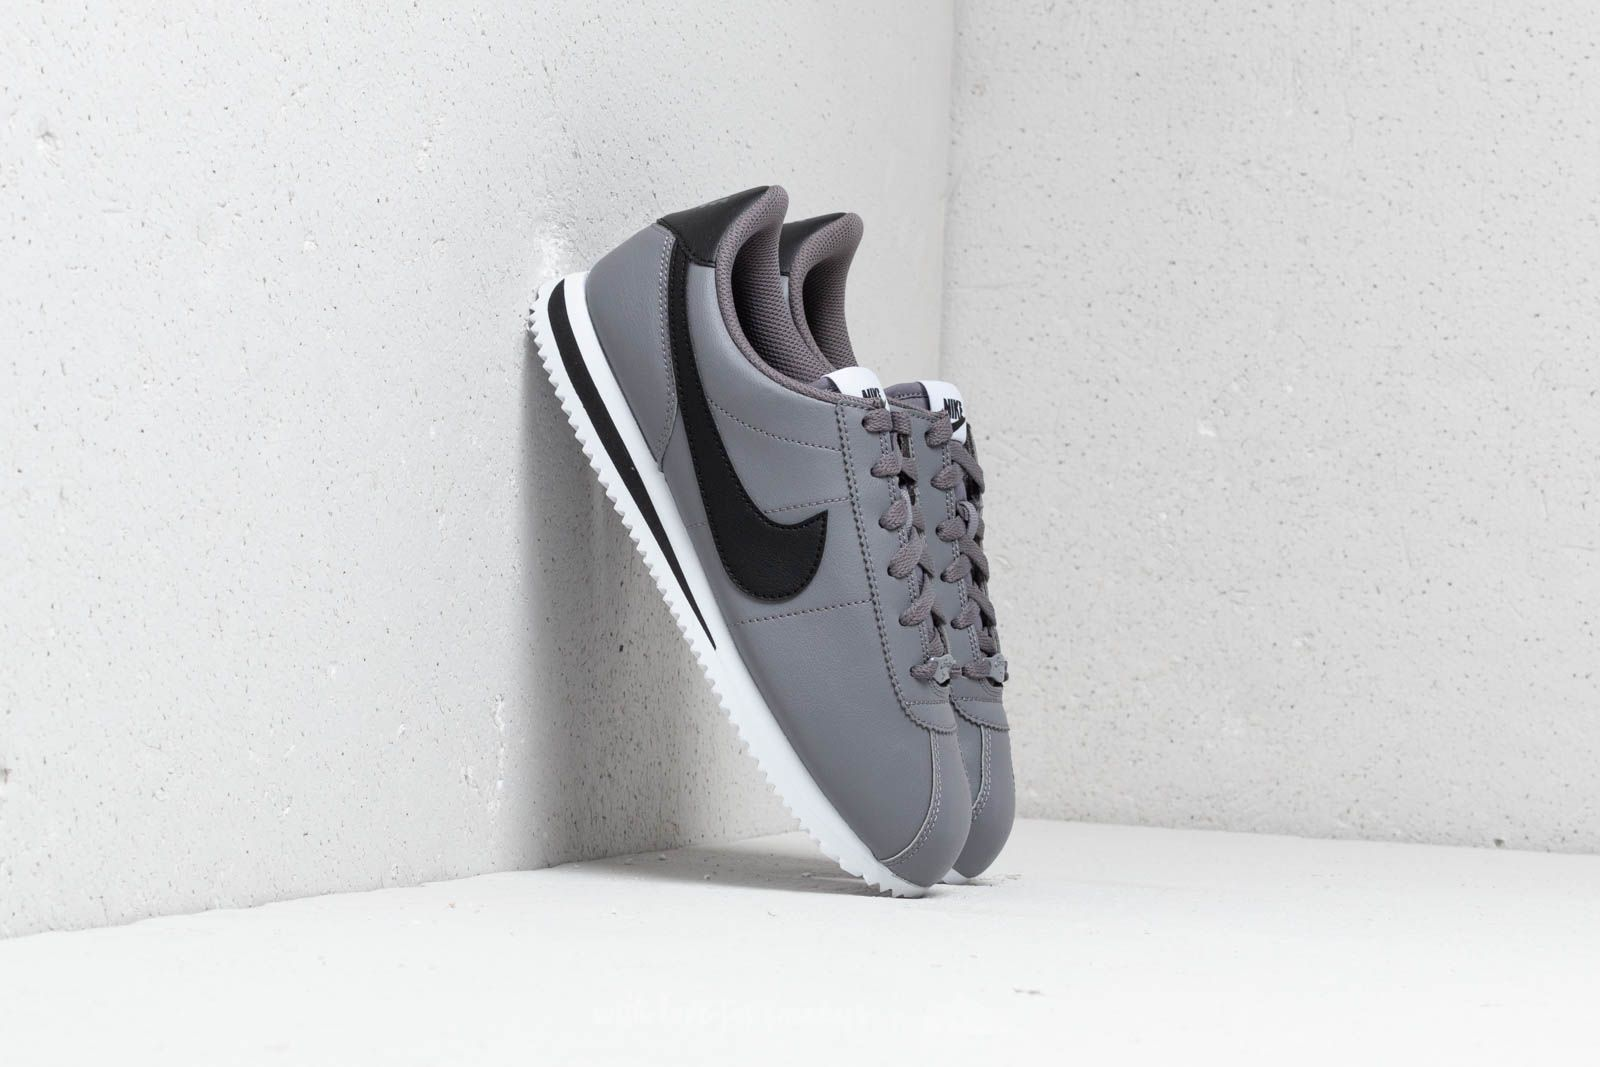 61408a10430fce Nike Cortez Basic SL (GS) Gunsmoke  Black-White